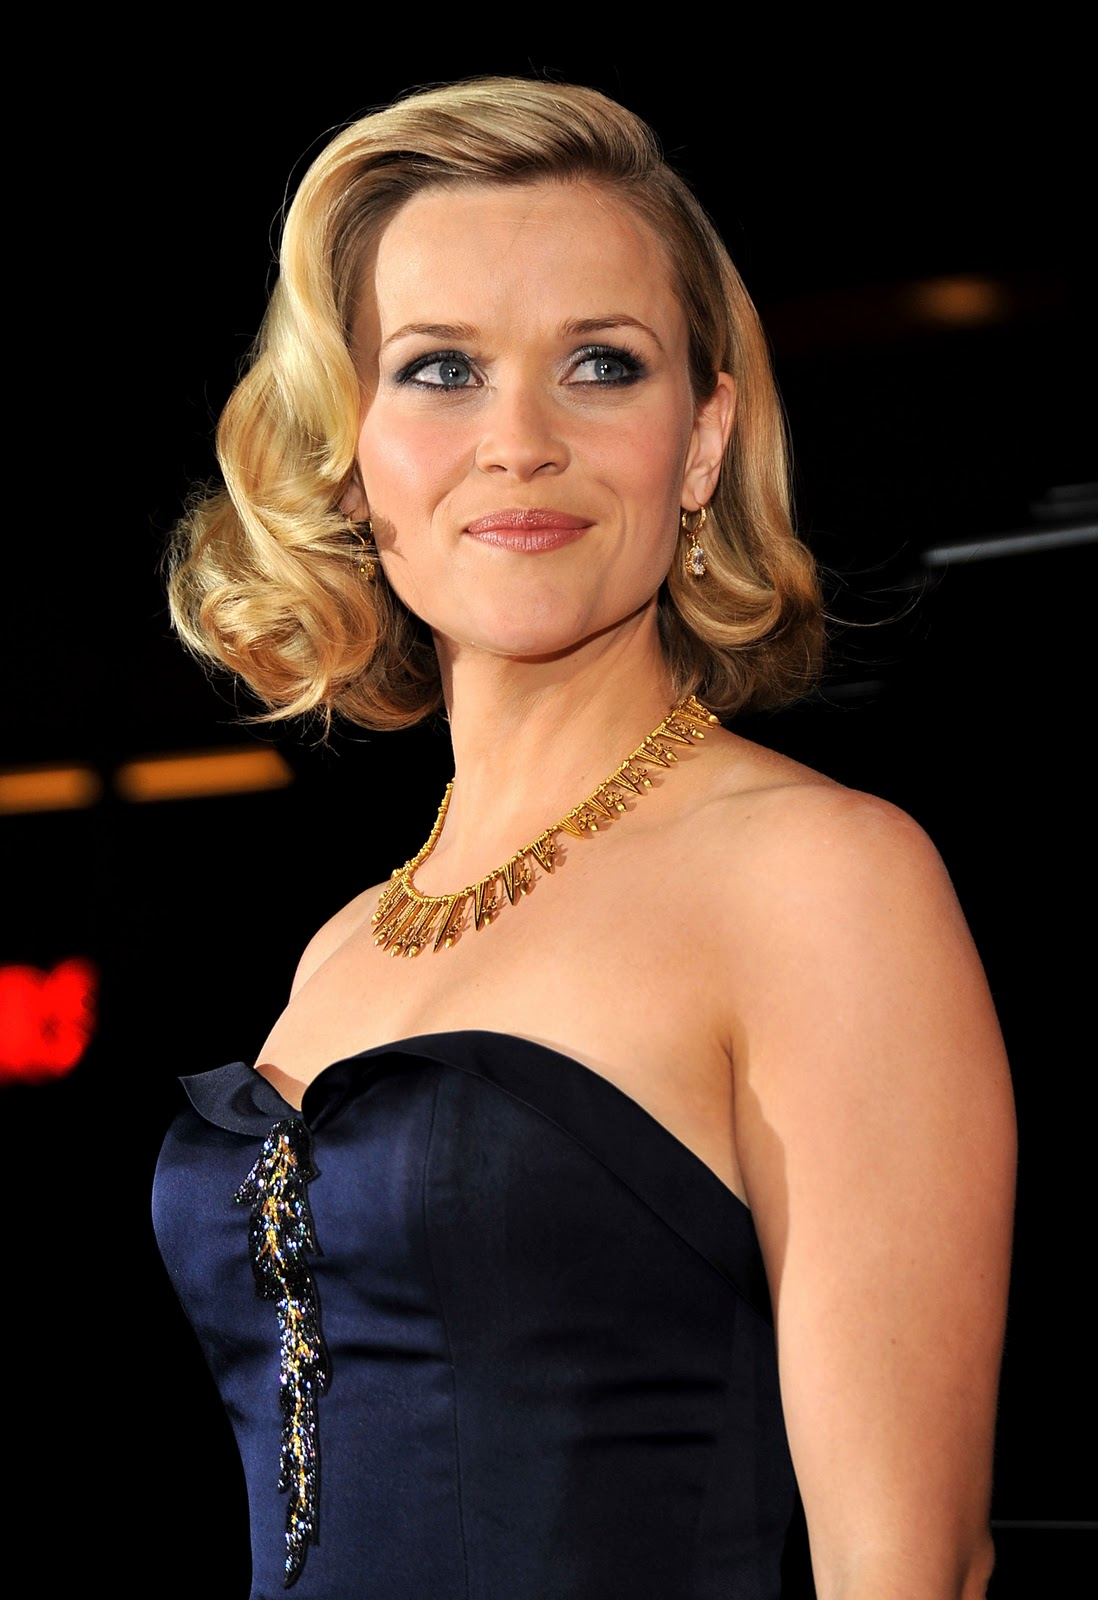 Reese Witherspoon Pictures Gallery 7 Film Actresses